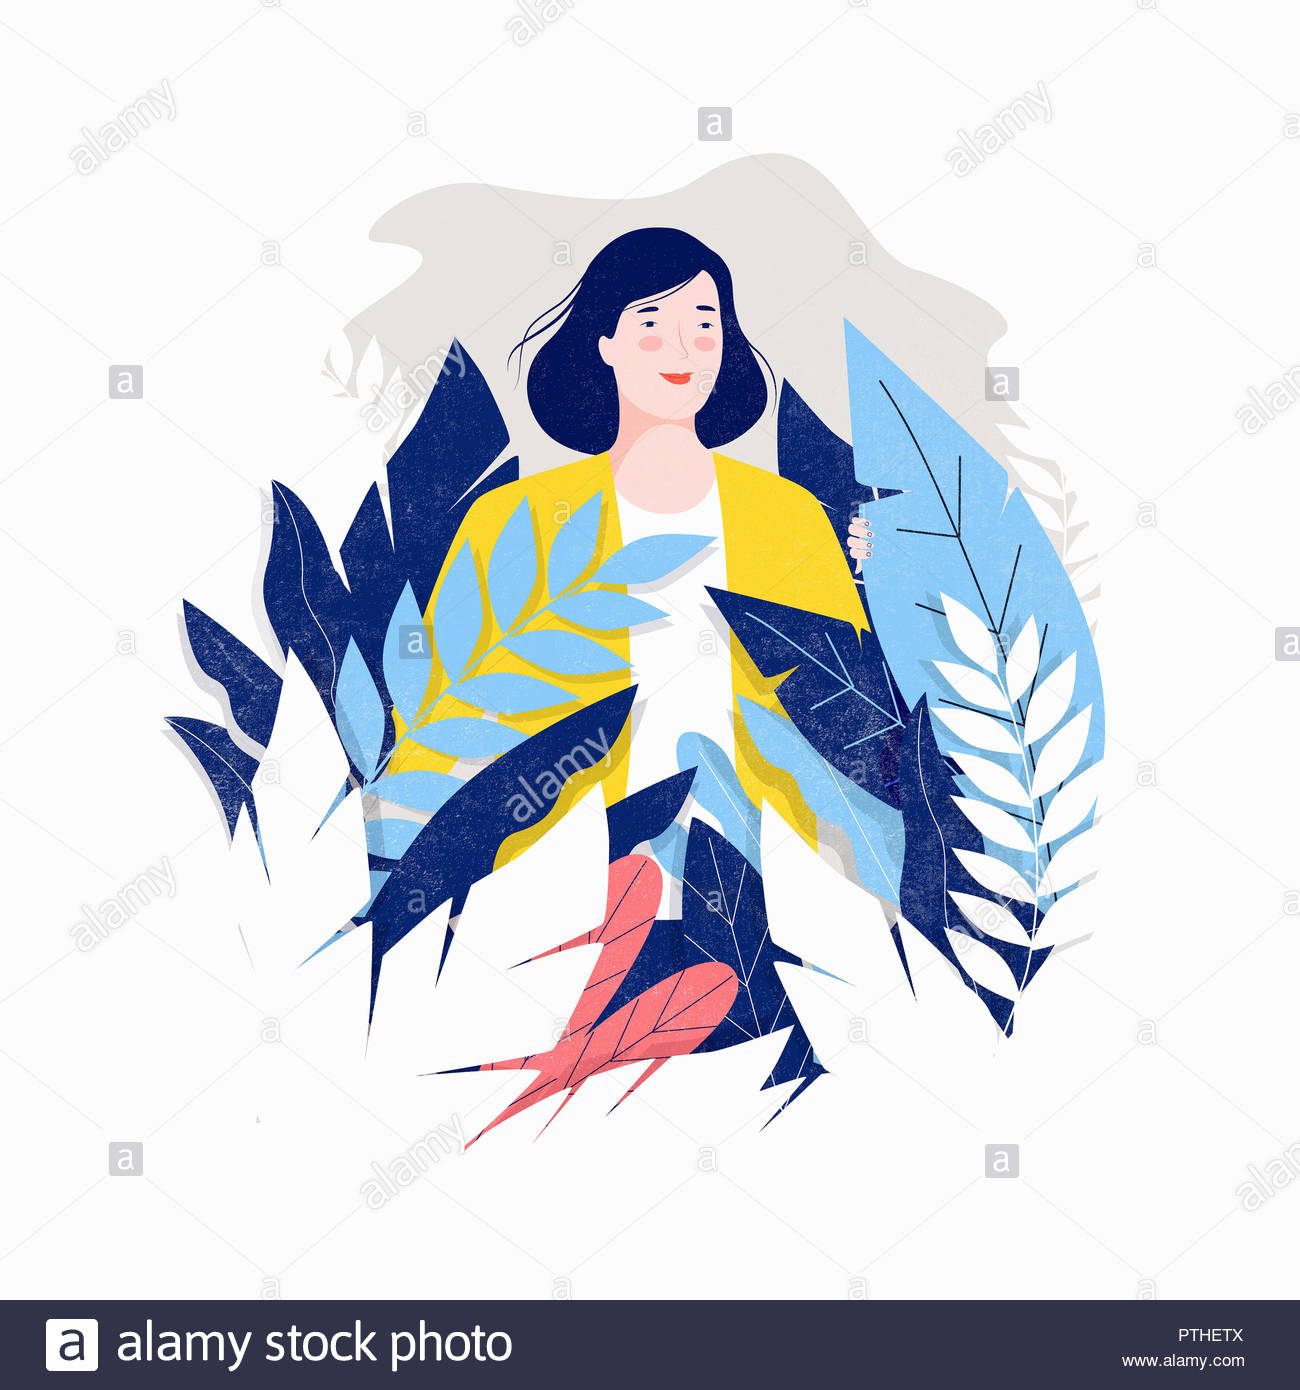 Woman exploring among leaves - Stock Image